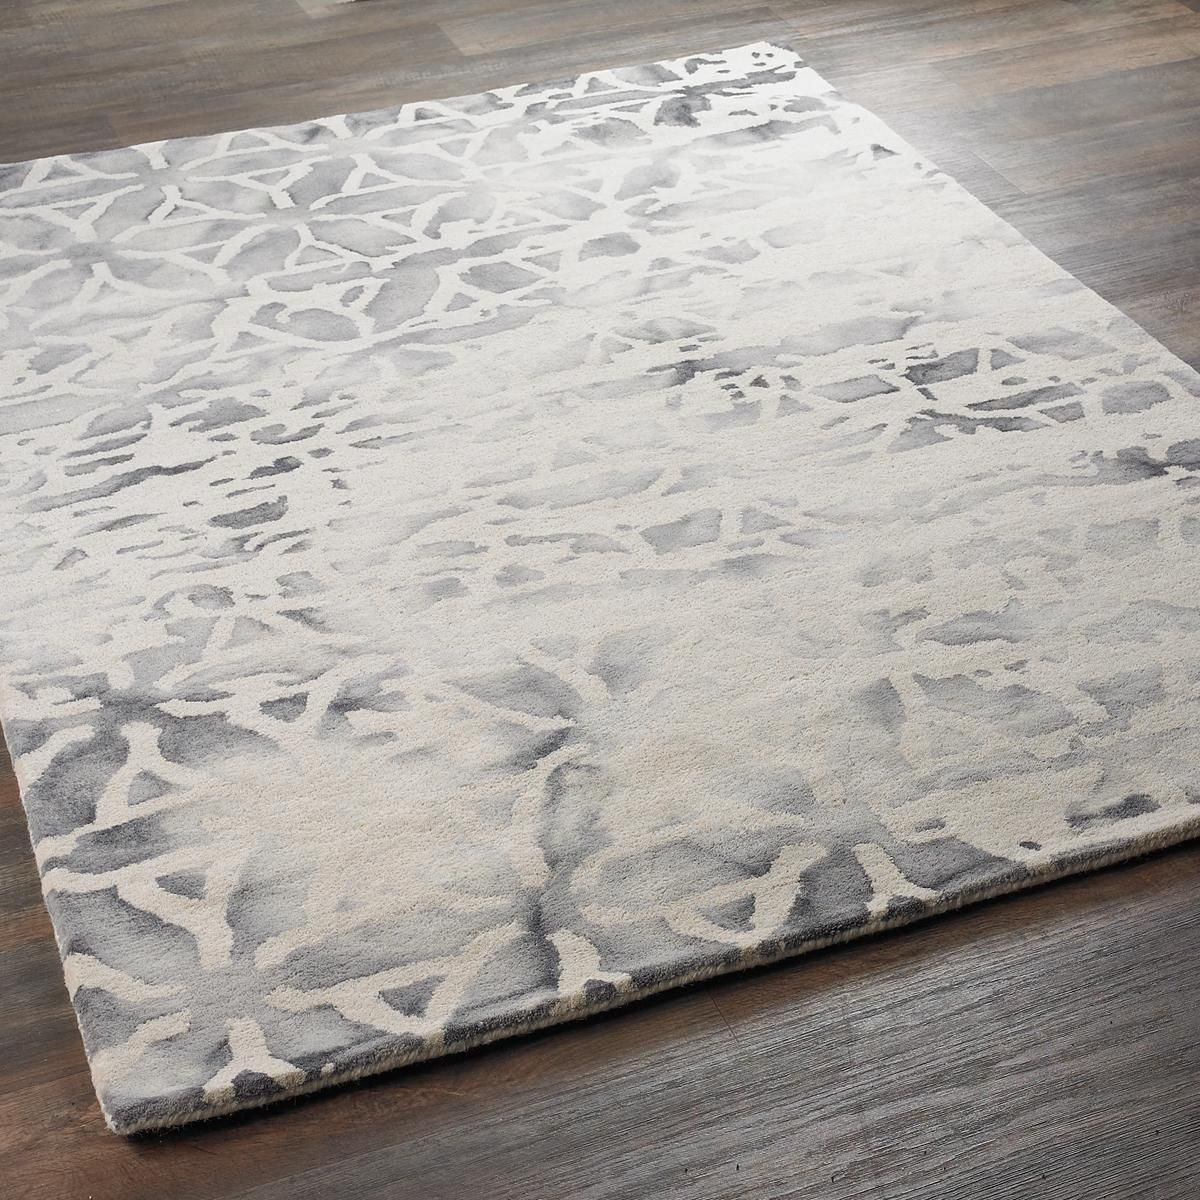 Contemporary Abstract Ocean Rug Organic Forms Like Water Over Sand Are The Defining Characteristic Of This Lush With Its Clever Spray Effect That Adds A